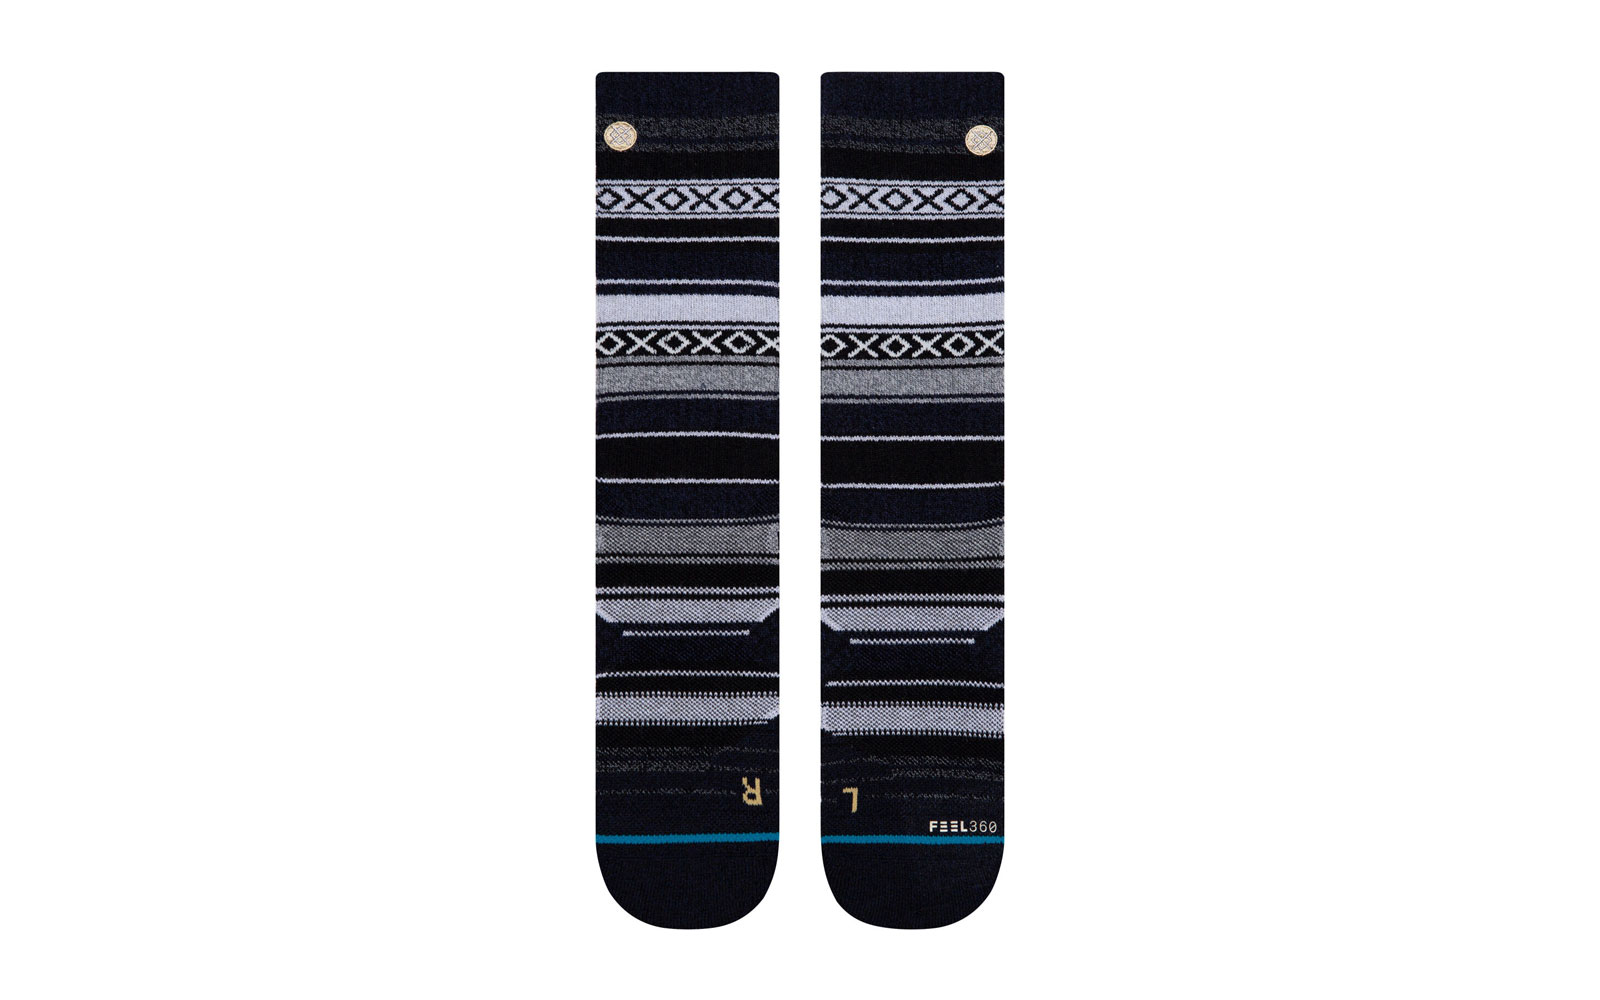 Black and Grey Patterned Crew Socks